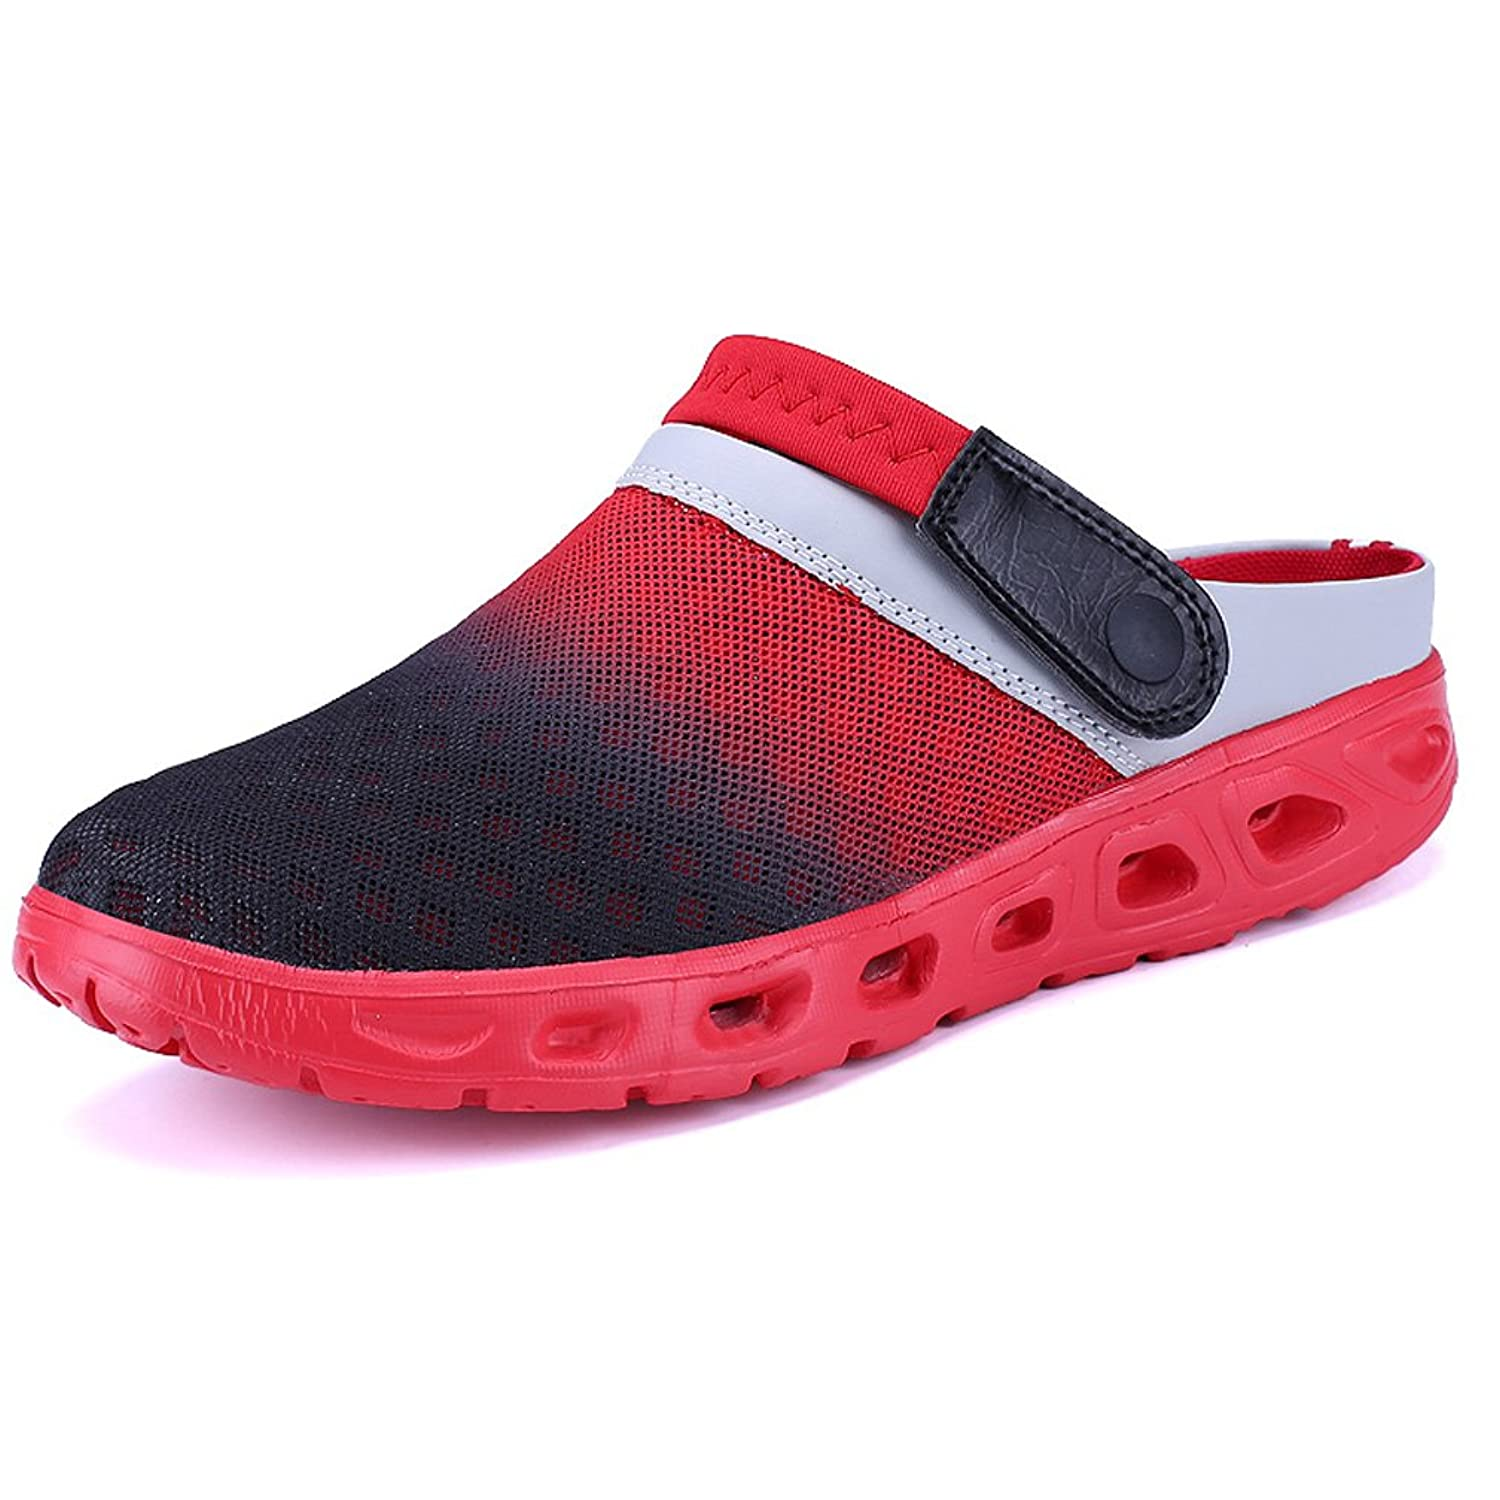 15317003d03a Hishoes Men s Mesh Slippers Beach Sandals Women s Lightweight Sandals  Breathable Water Shoes Outdoor Walking Garden Clog Shoes